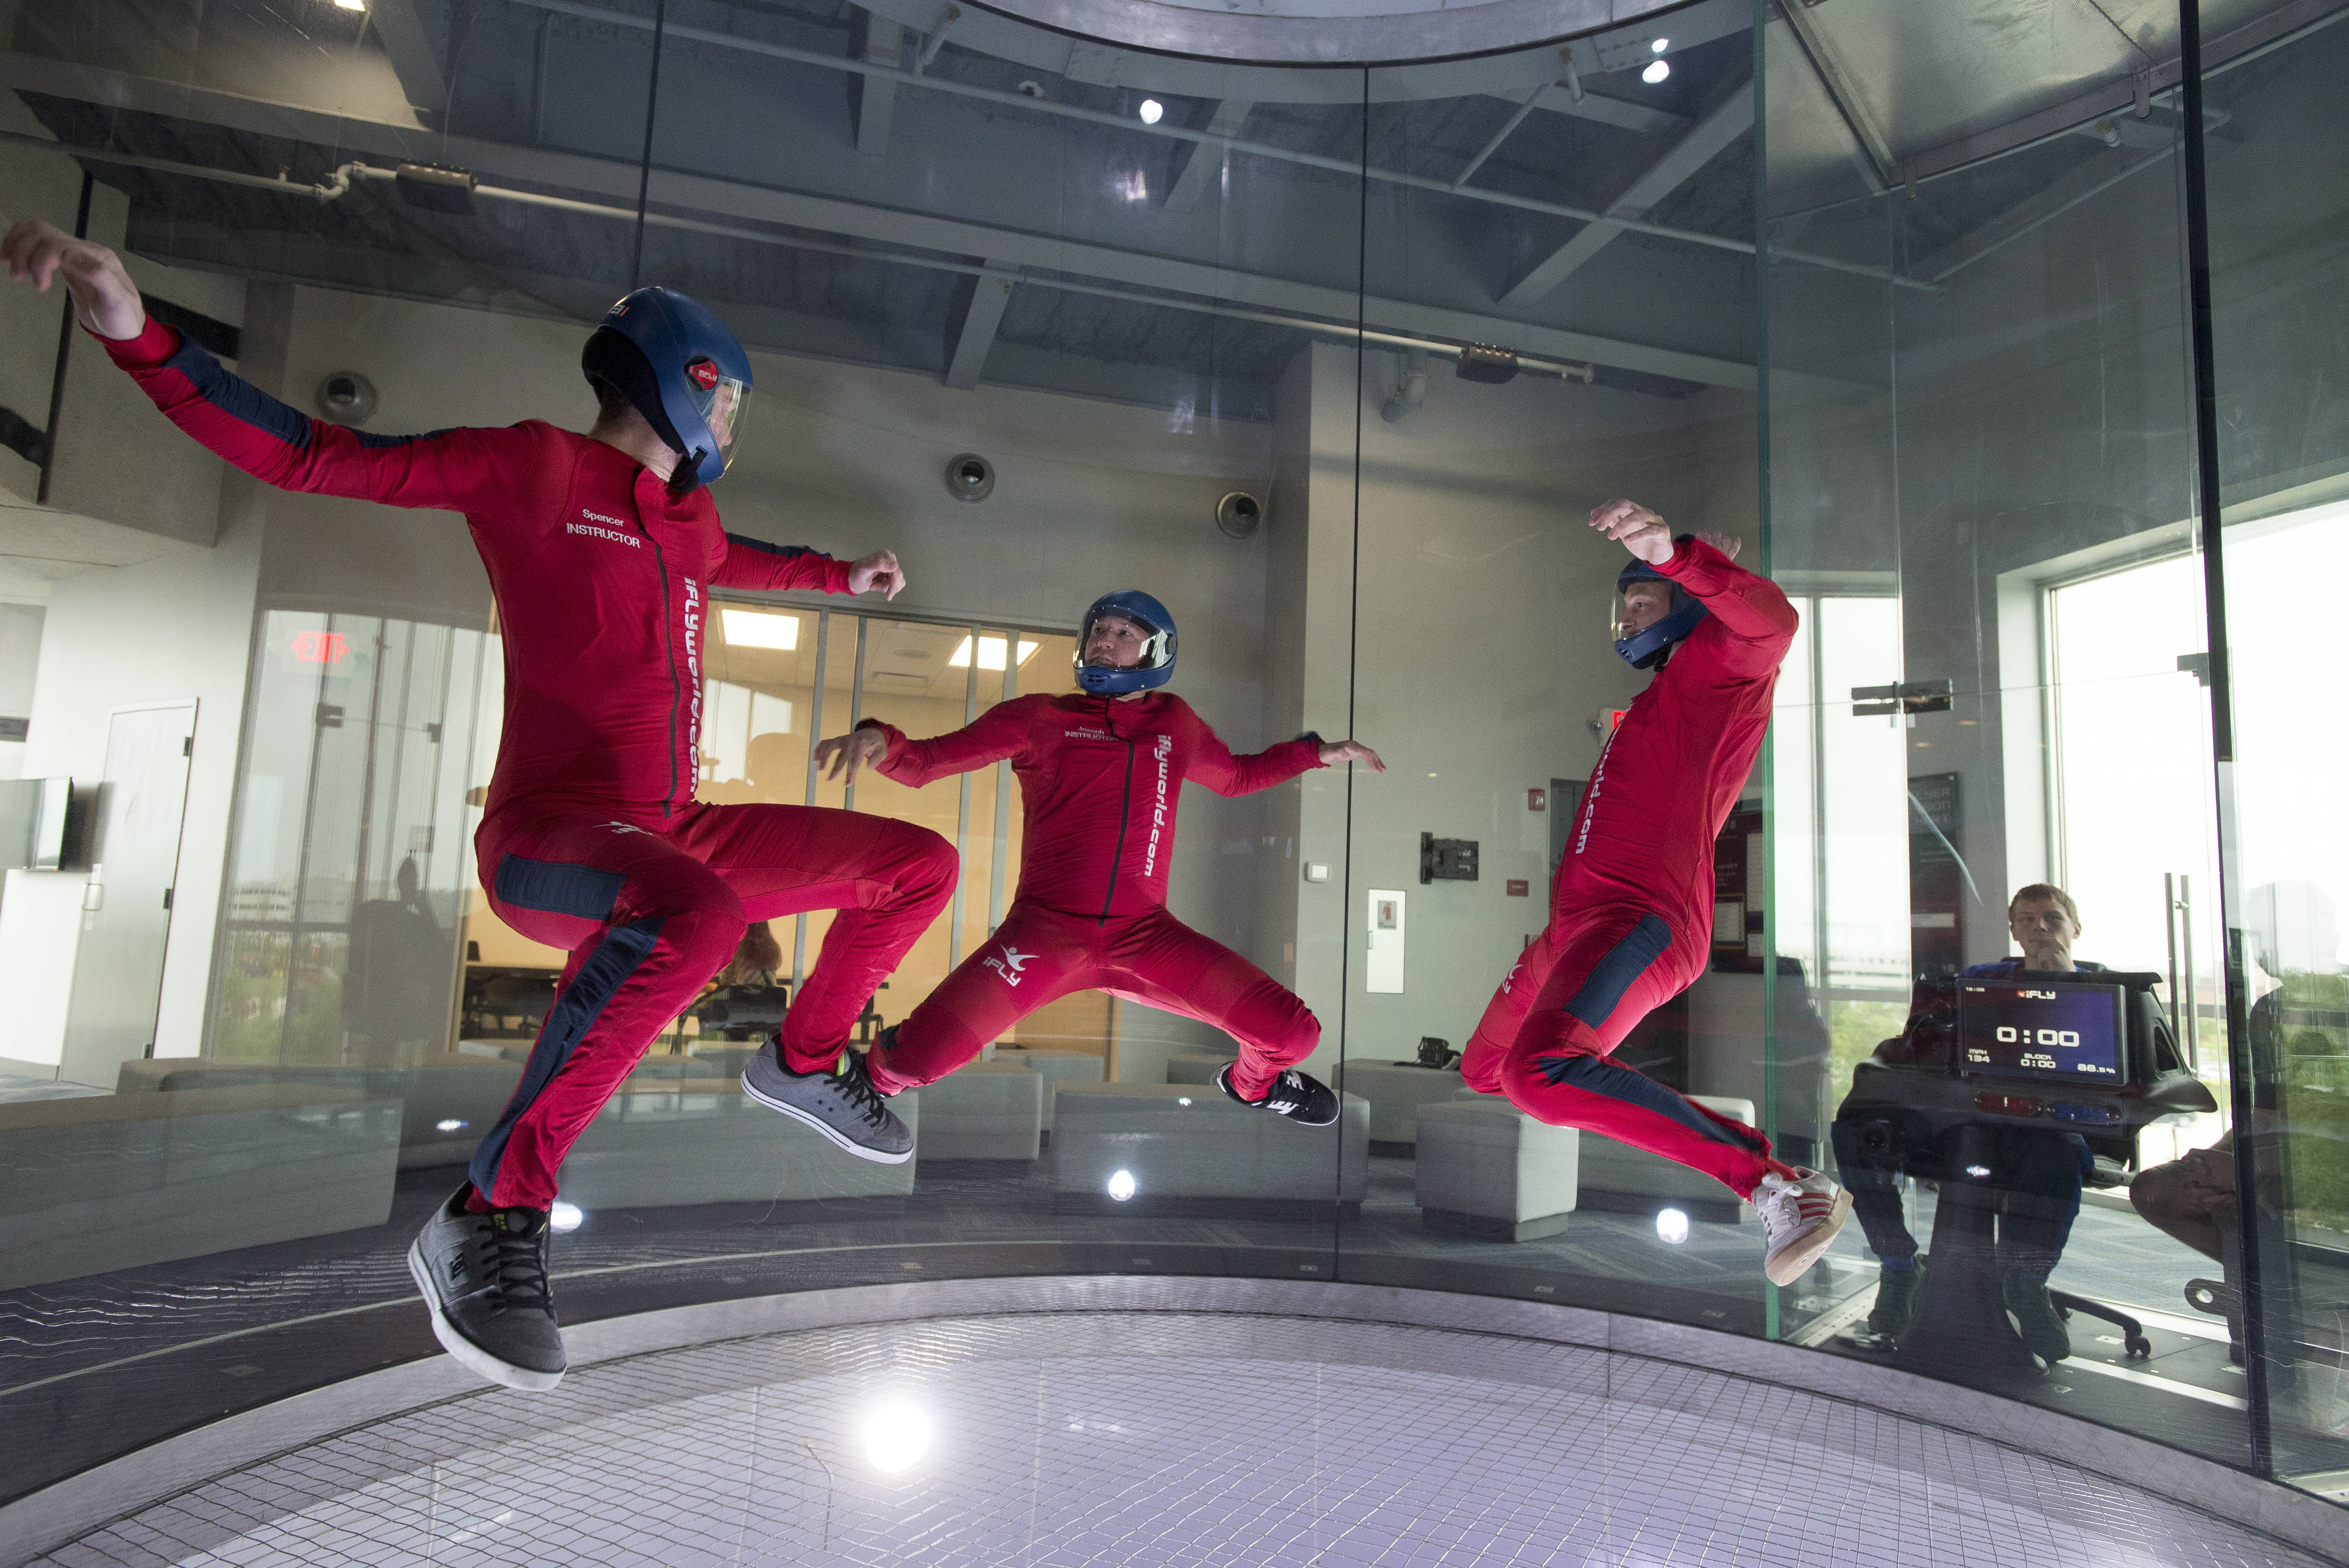 Instructors perform some stunts in the flight chamber at the new indoor sky-diving center in Naperville. The facility on Freedom Drive is the second iFly in the area, opening two months after the first venue came to Rosemont.